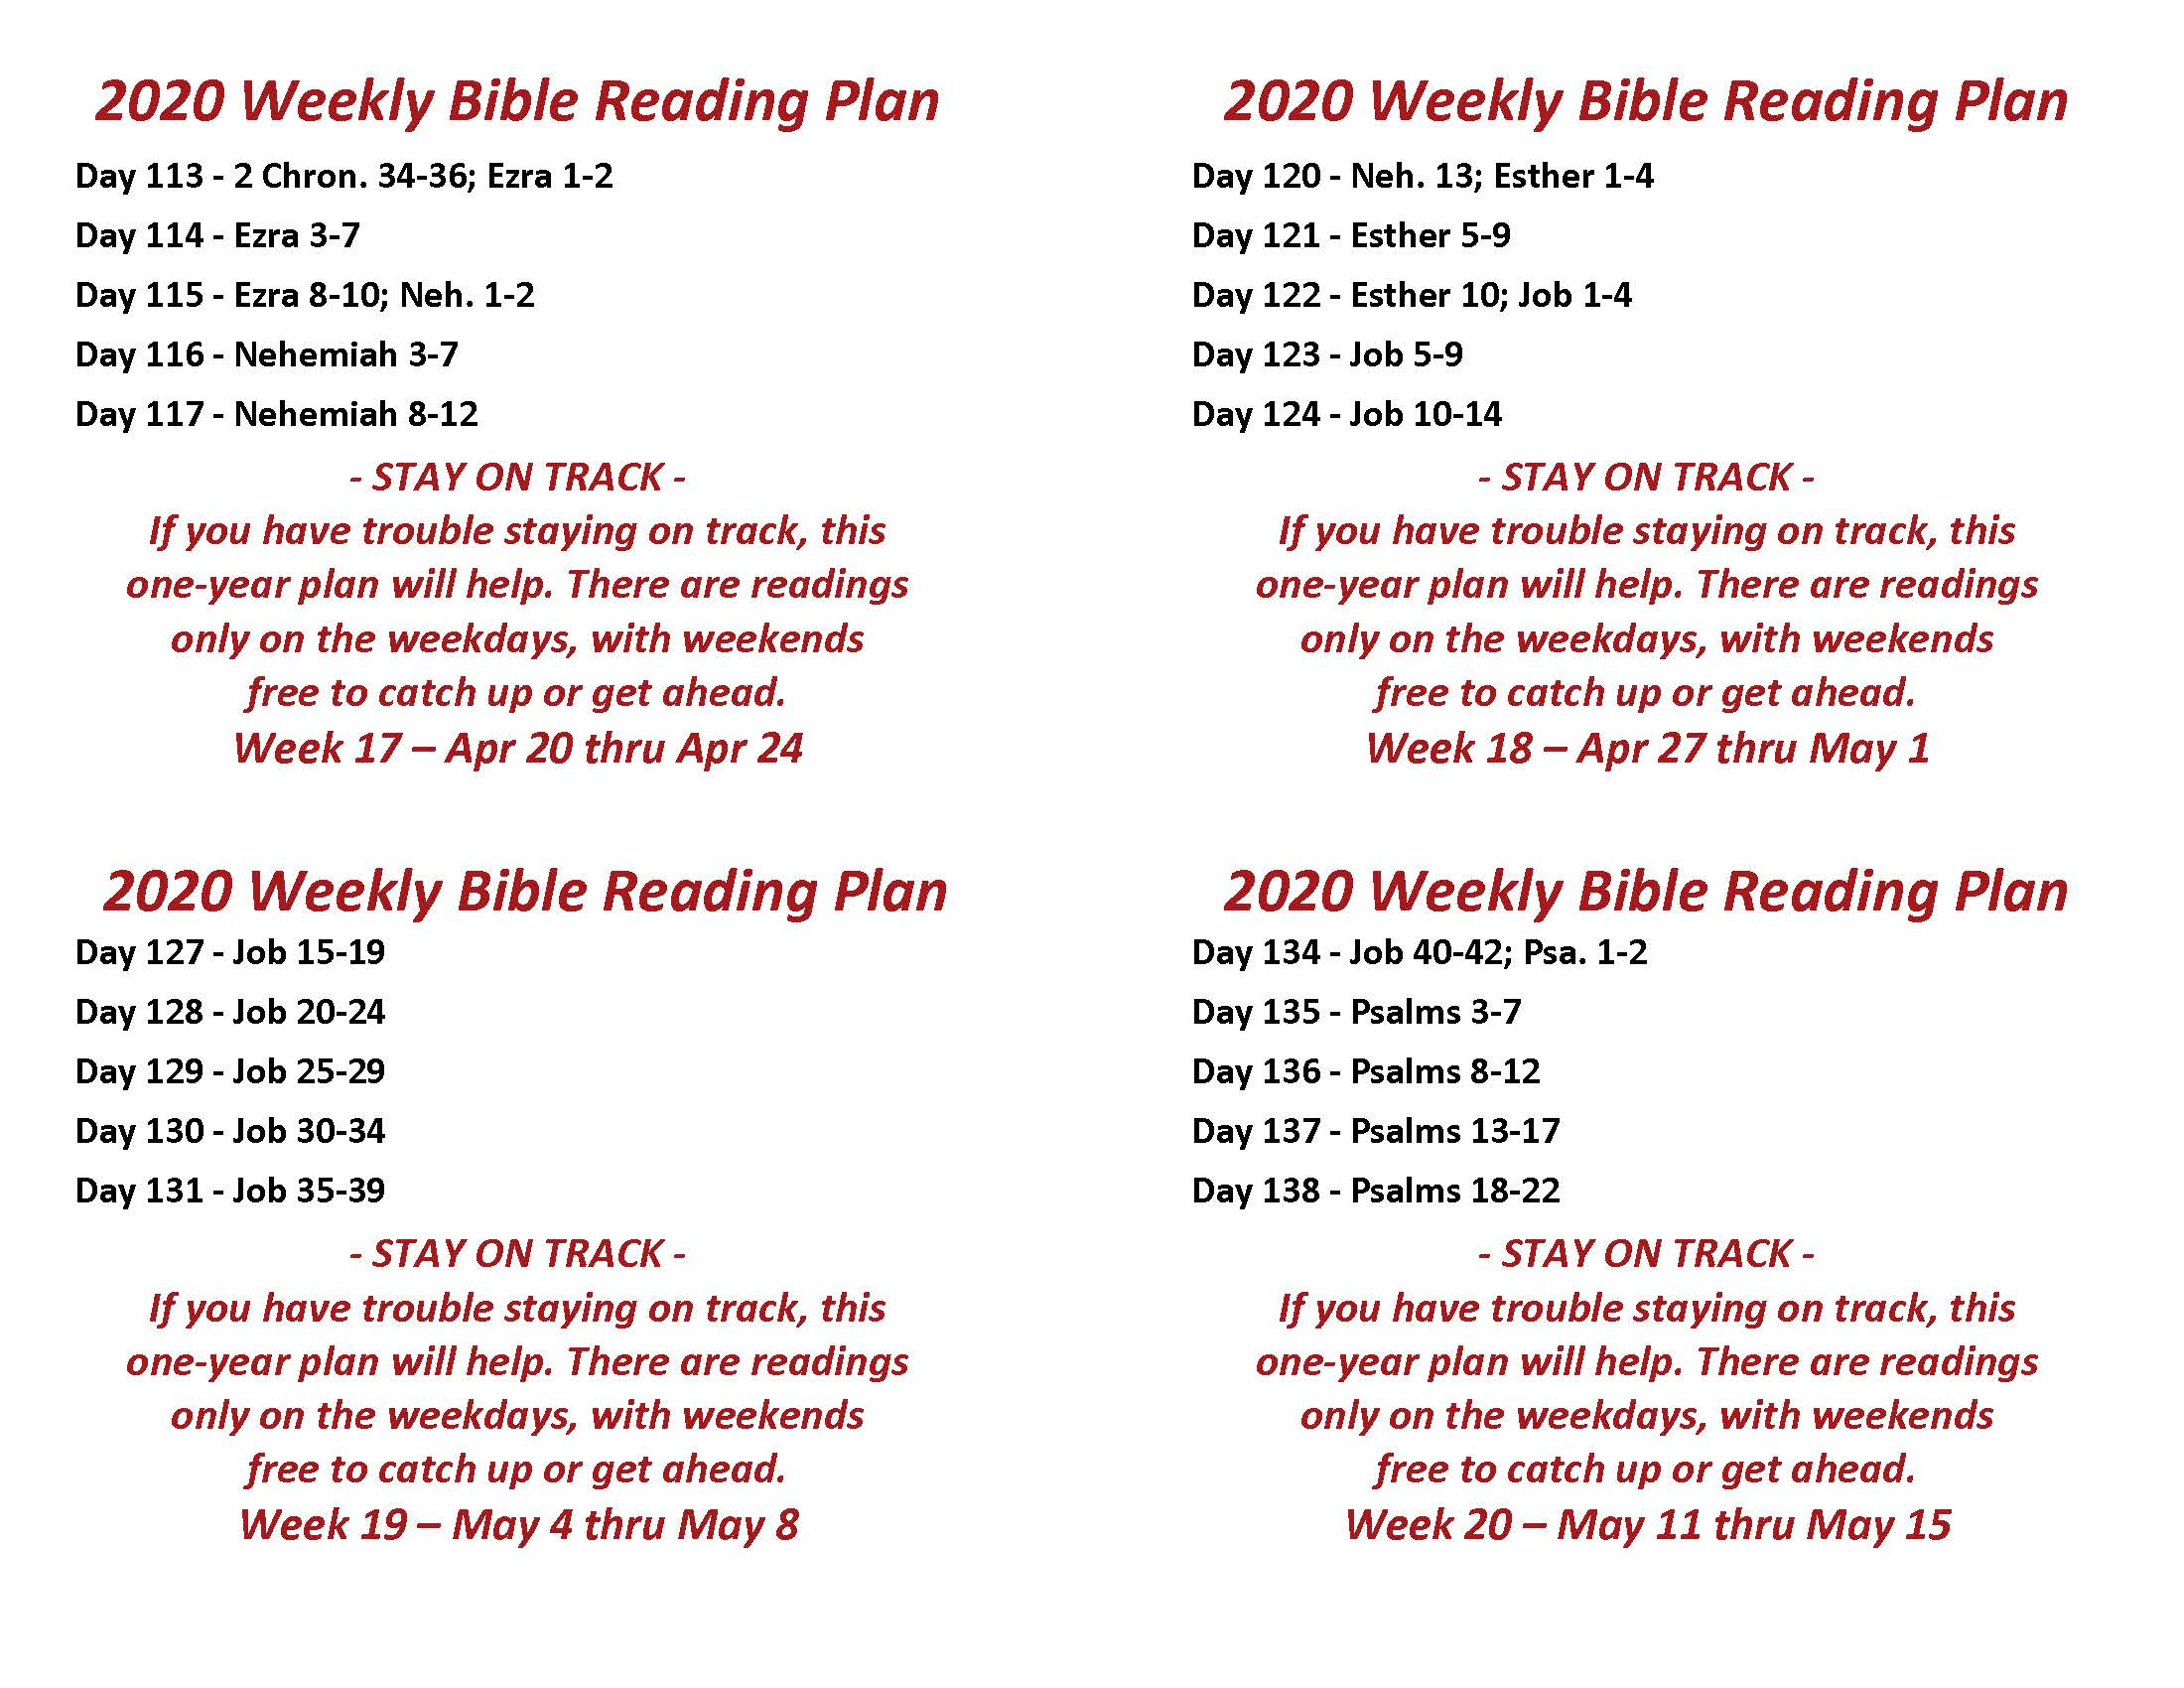 Read the Bible Through in a Year Apr 20 thru May 15